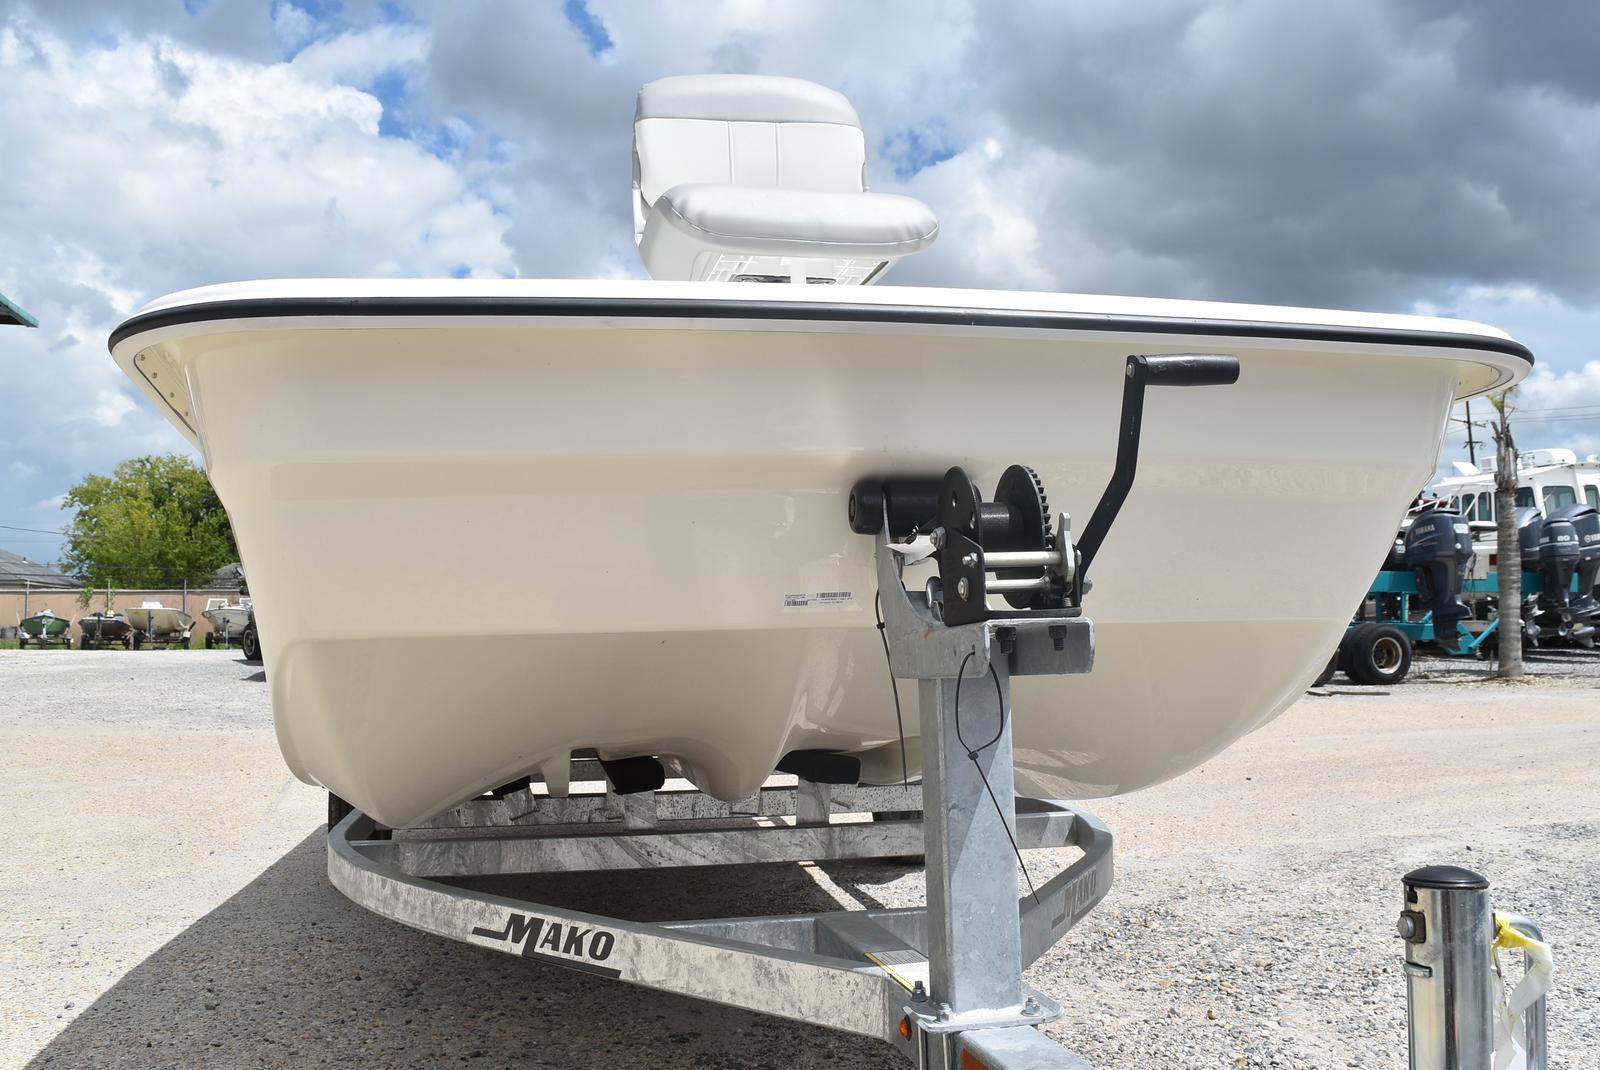 2020 Mako boat for sale, model of the boat is Pro Skiff 17, 75 ELPT & Image # 372 of 702